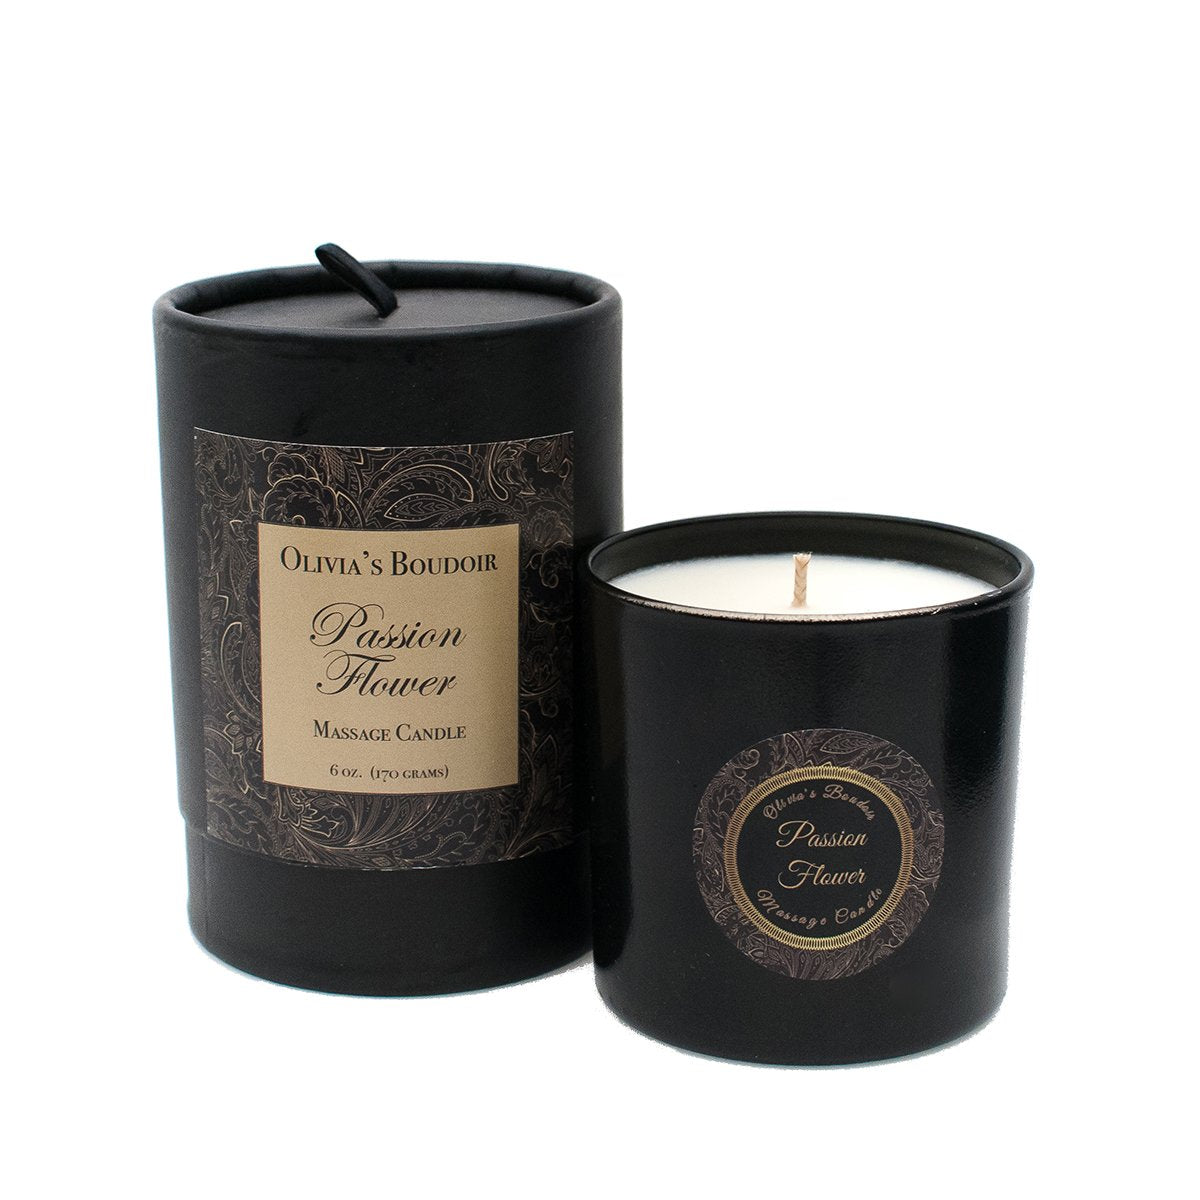 Rosy Brown Olivia's Boudoir Candle 6.5oz - Passion Flower